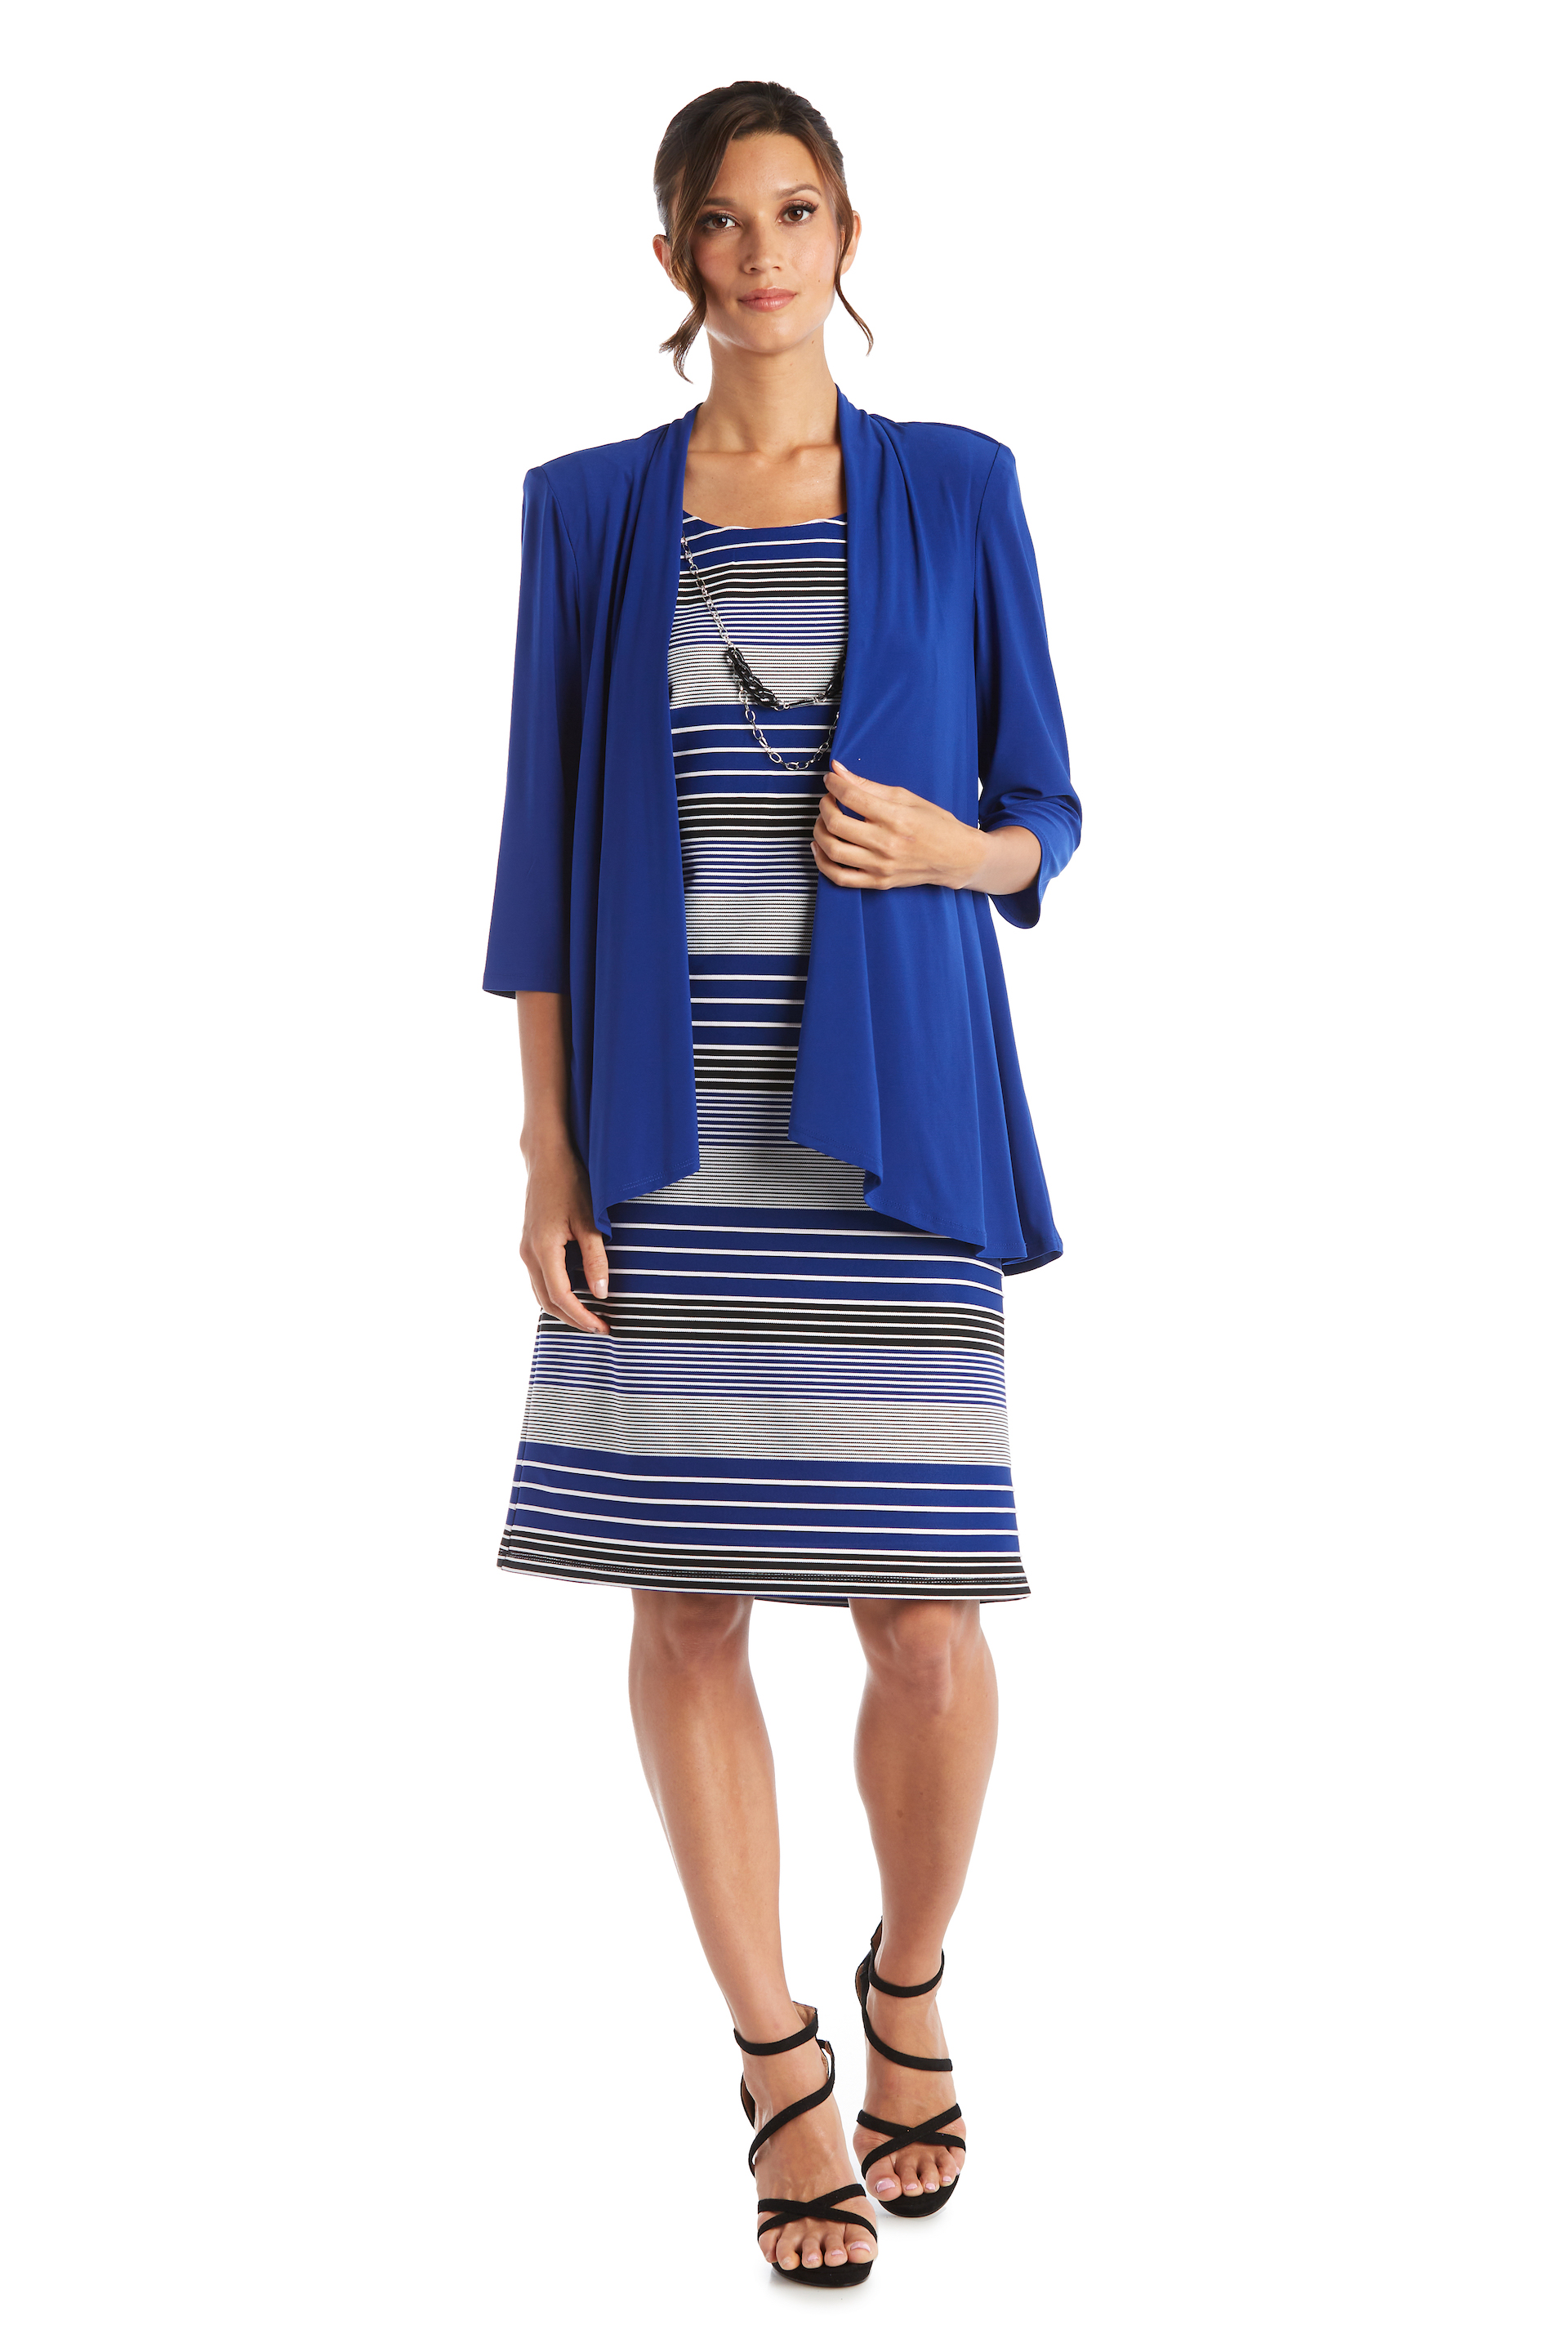 Stripe Dress with Jacket - Misses -Royal - Front